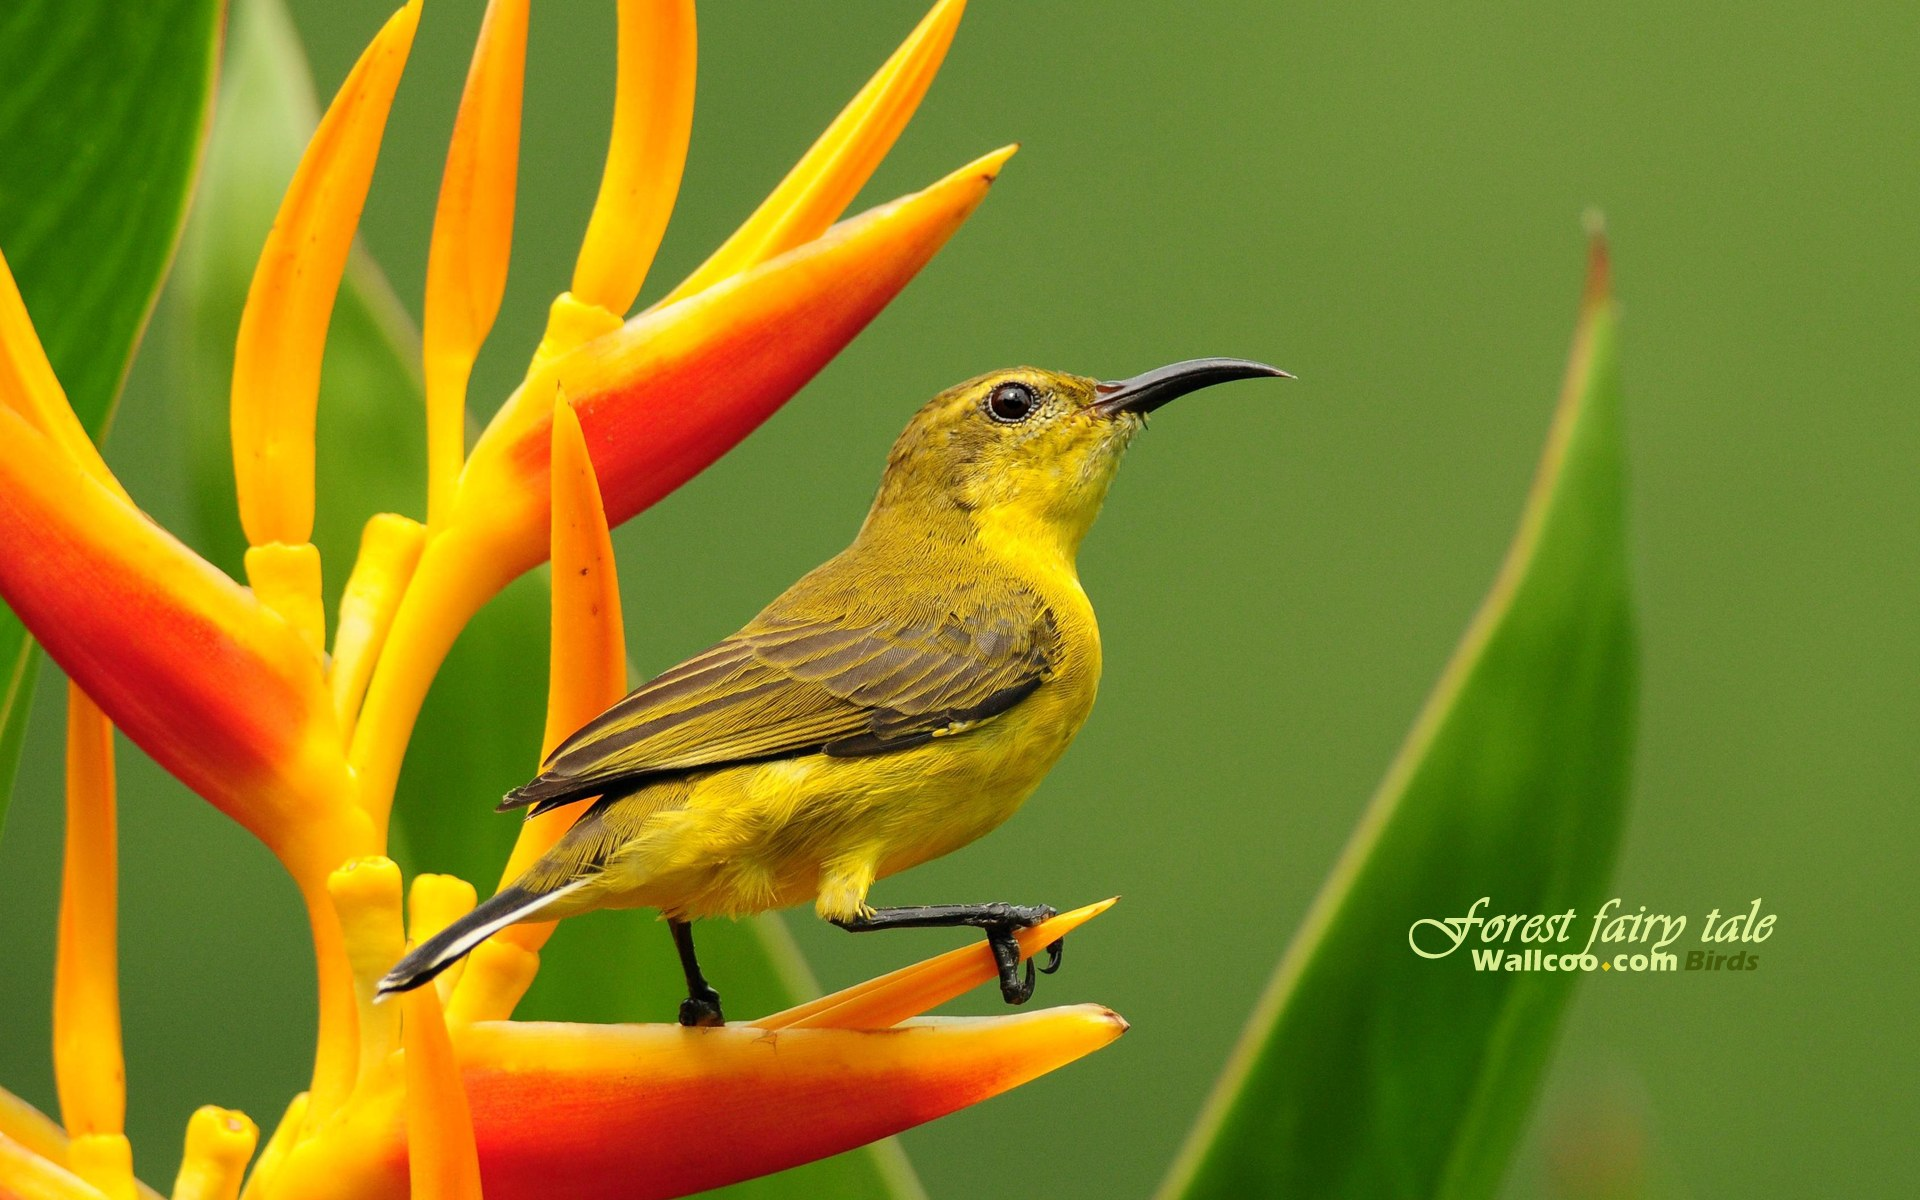 Gorgeous Birds Singapore Sunbird Olive Backed Sunbird Female wallpaper